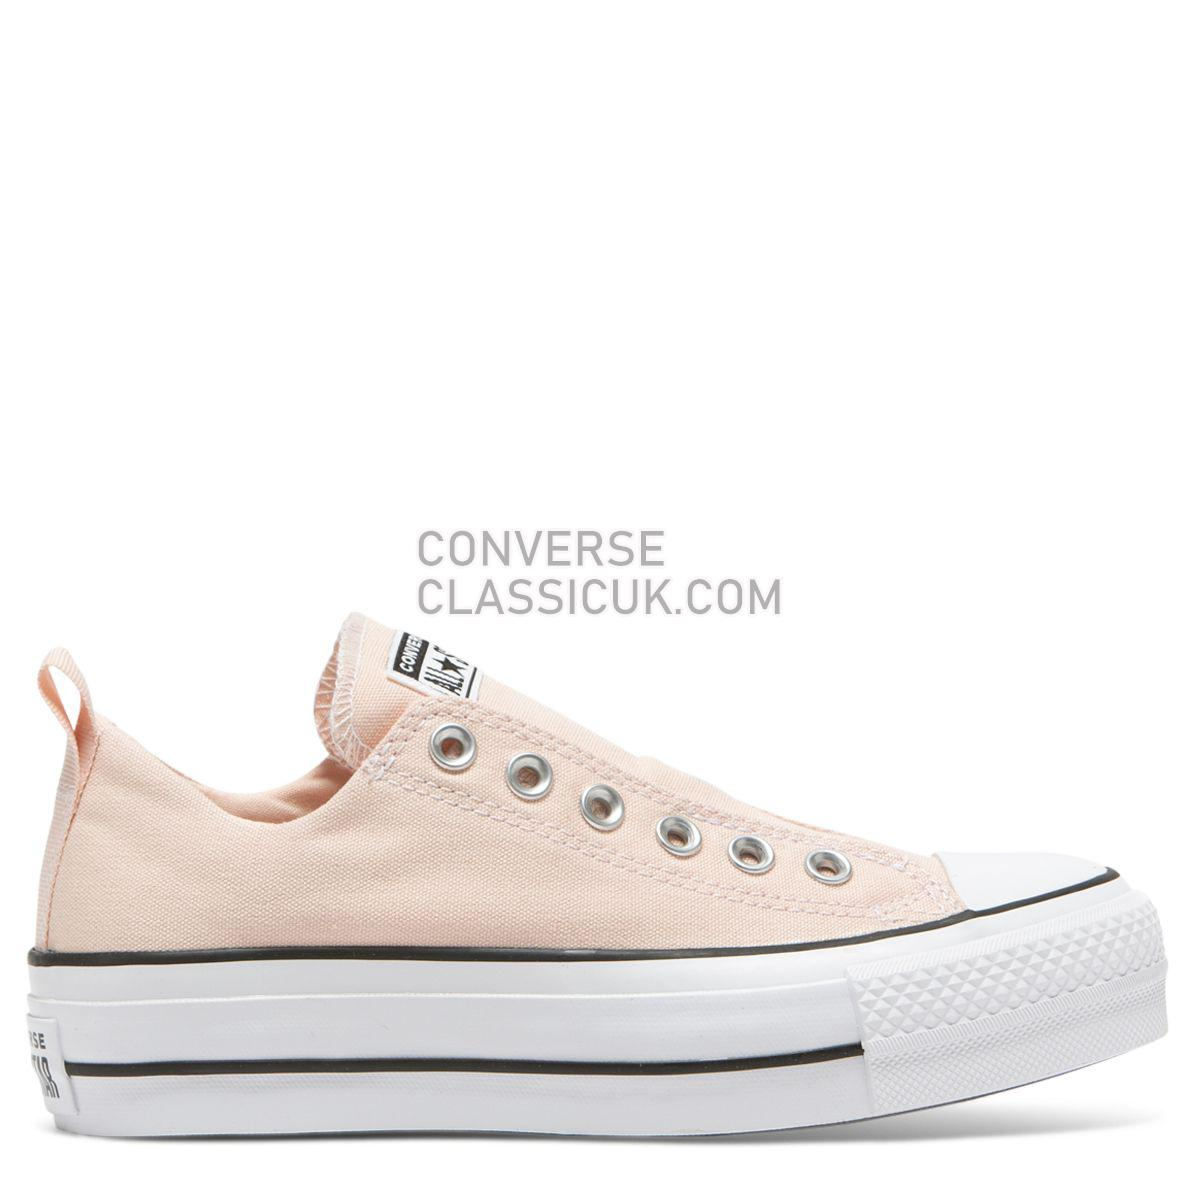 Converse Chuck Taylor All Star Lift Cali Mood Slip Low Top Washed Coral Womens 564341 Washed Coral/White/Black Shoes